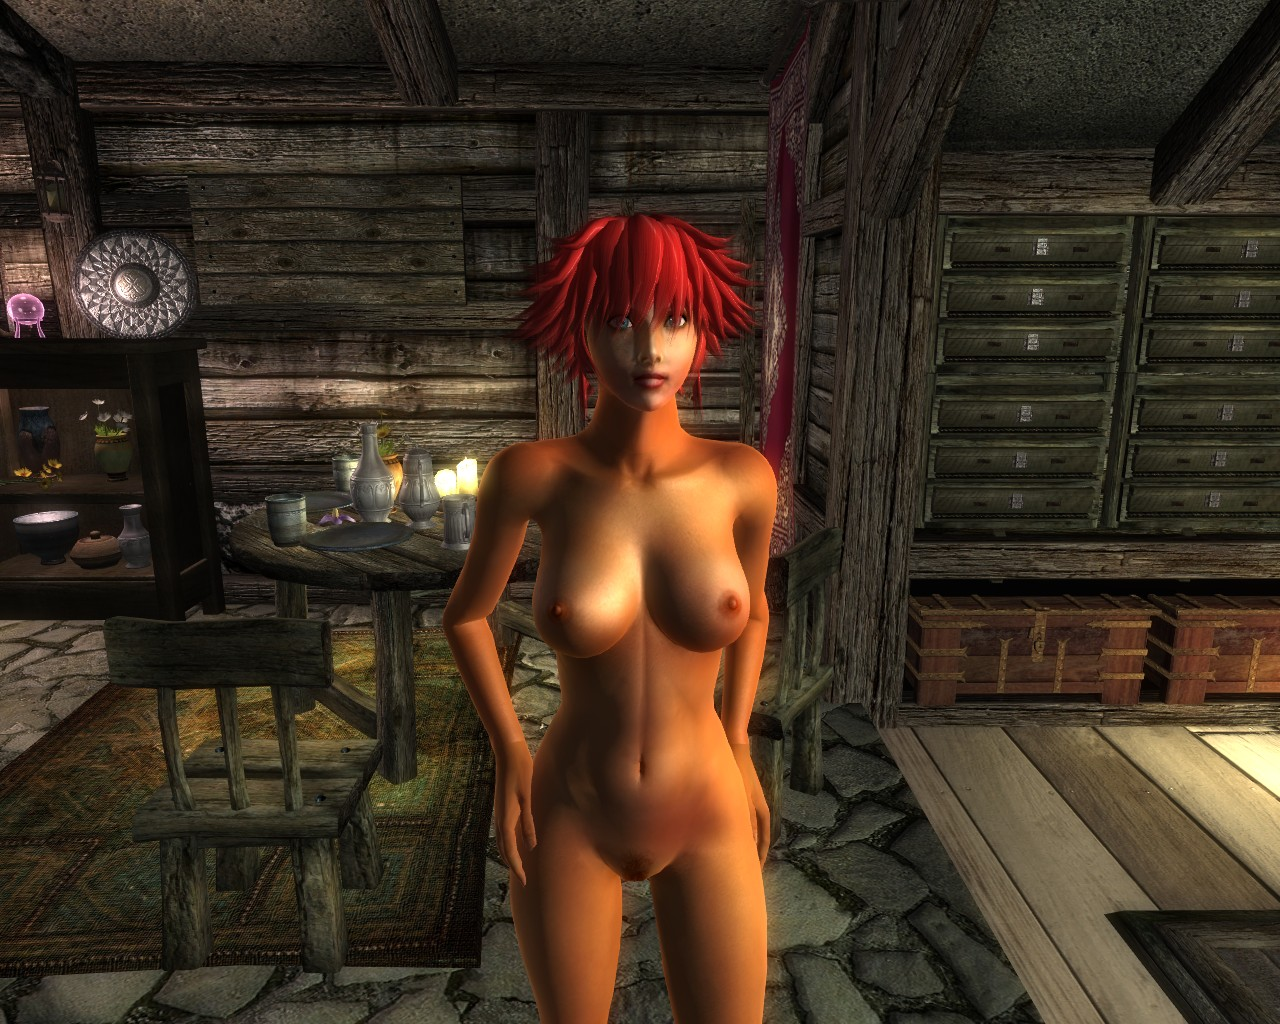 HGEC EyeCandy Body Textures http://modsreloaded.com/hg-eyecandy-body/images/